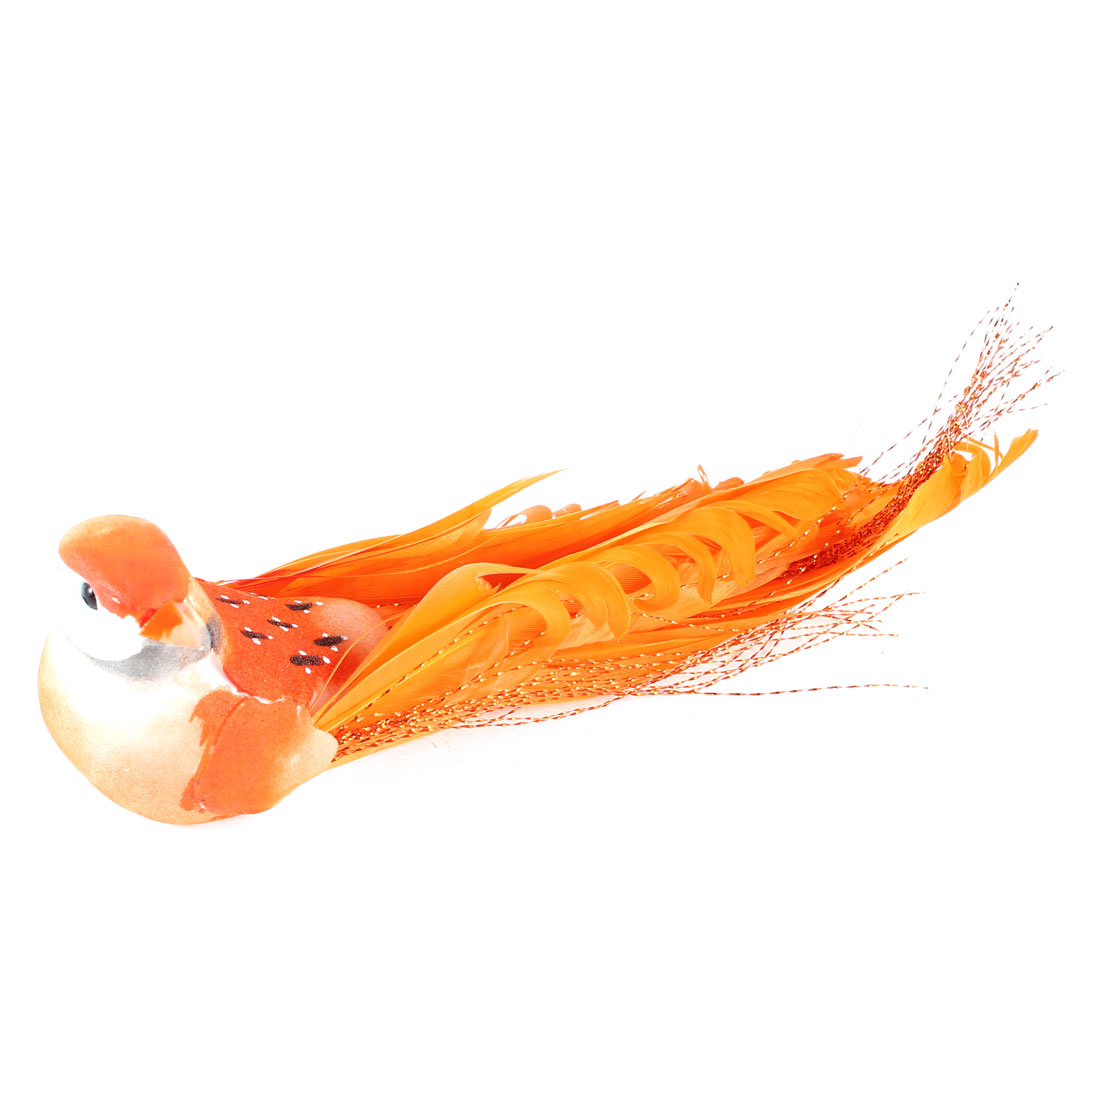 Twinkle Thread Accent Magnetic Simulated Bird Animal Decor Orange 14cm Lenght